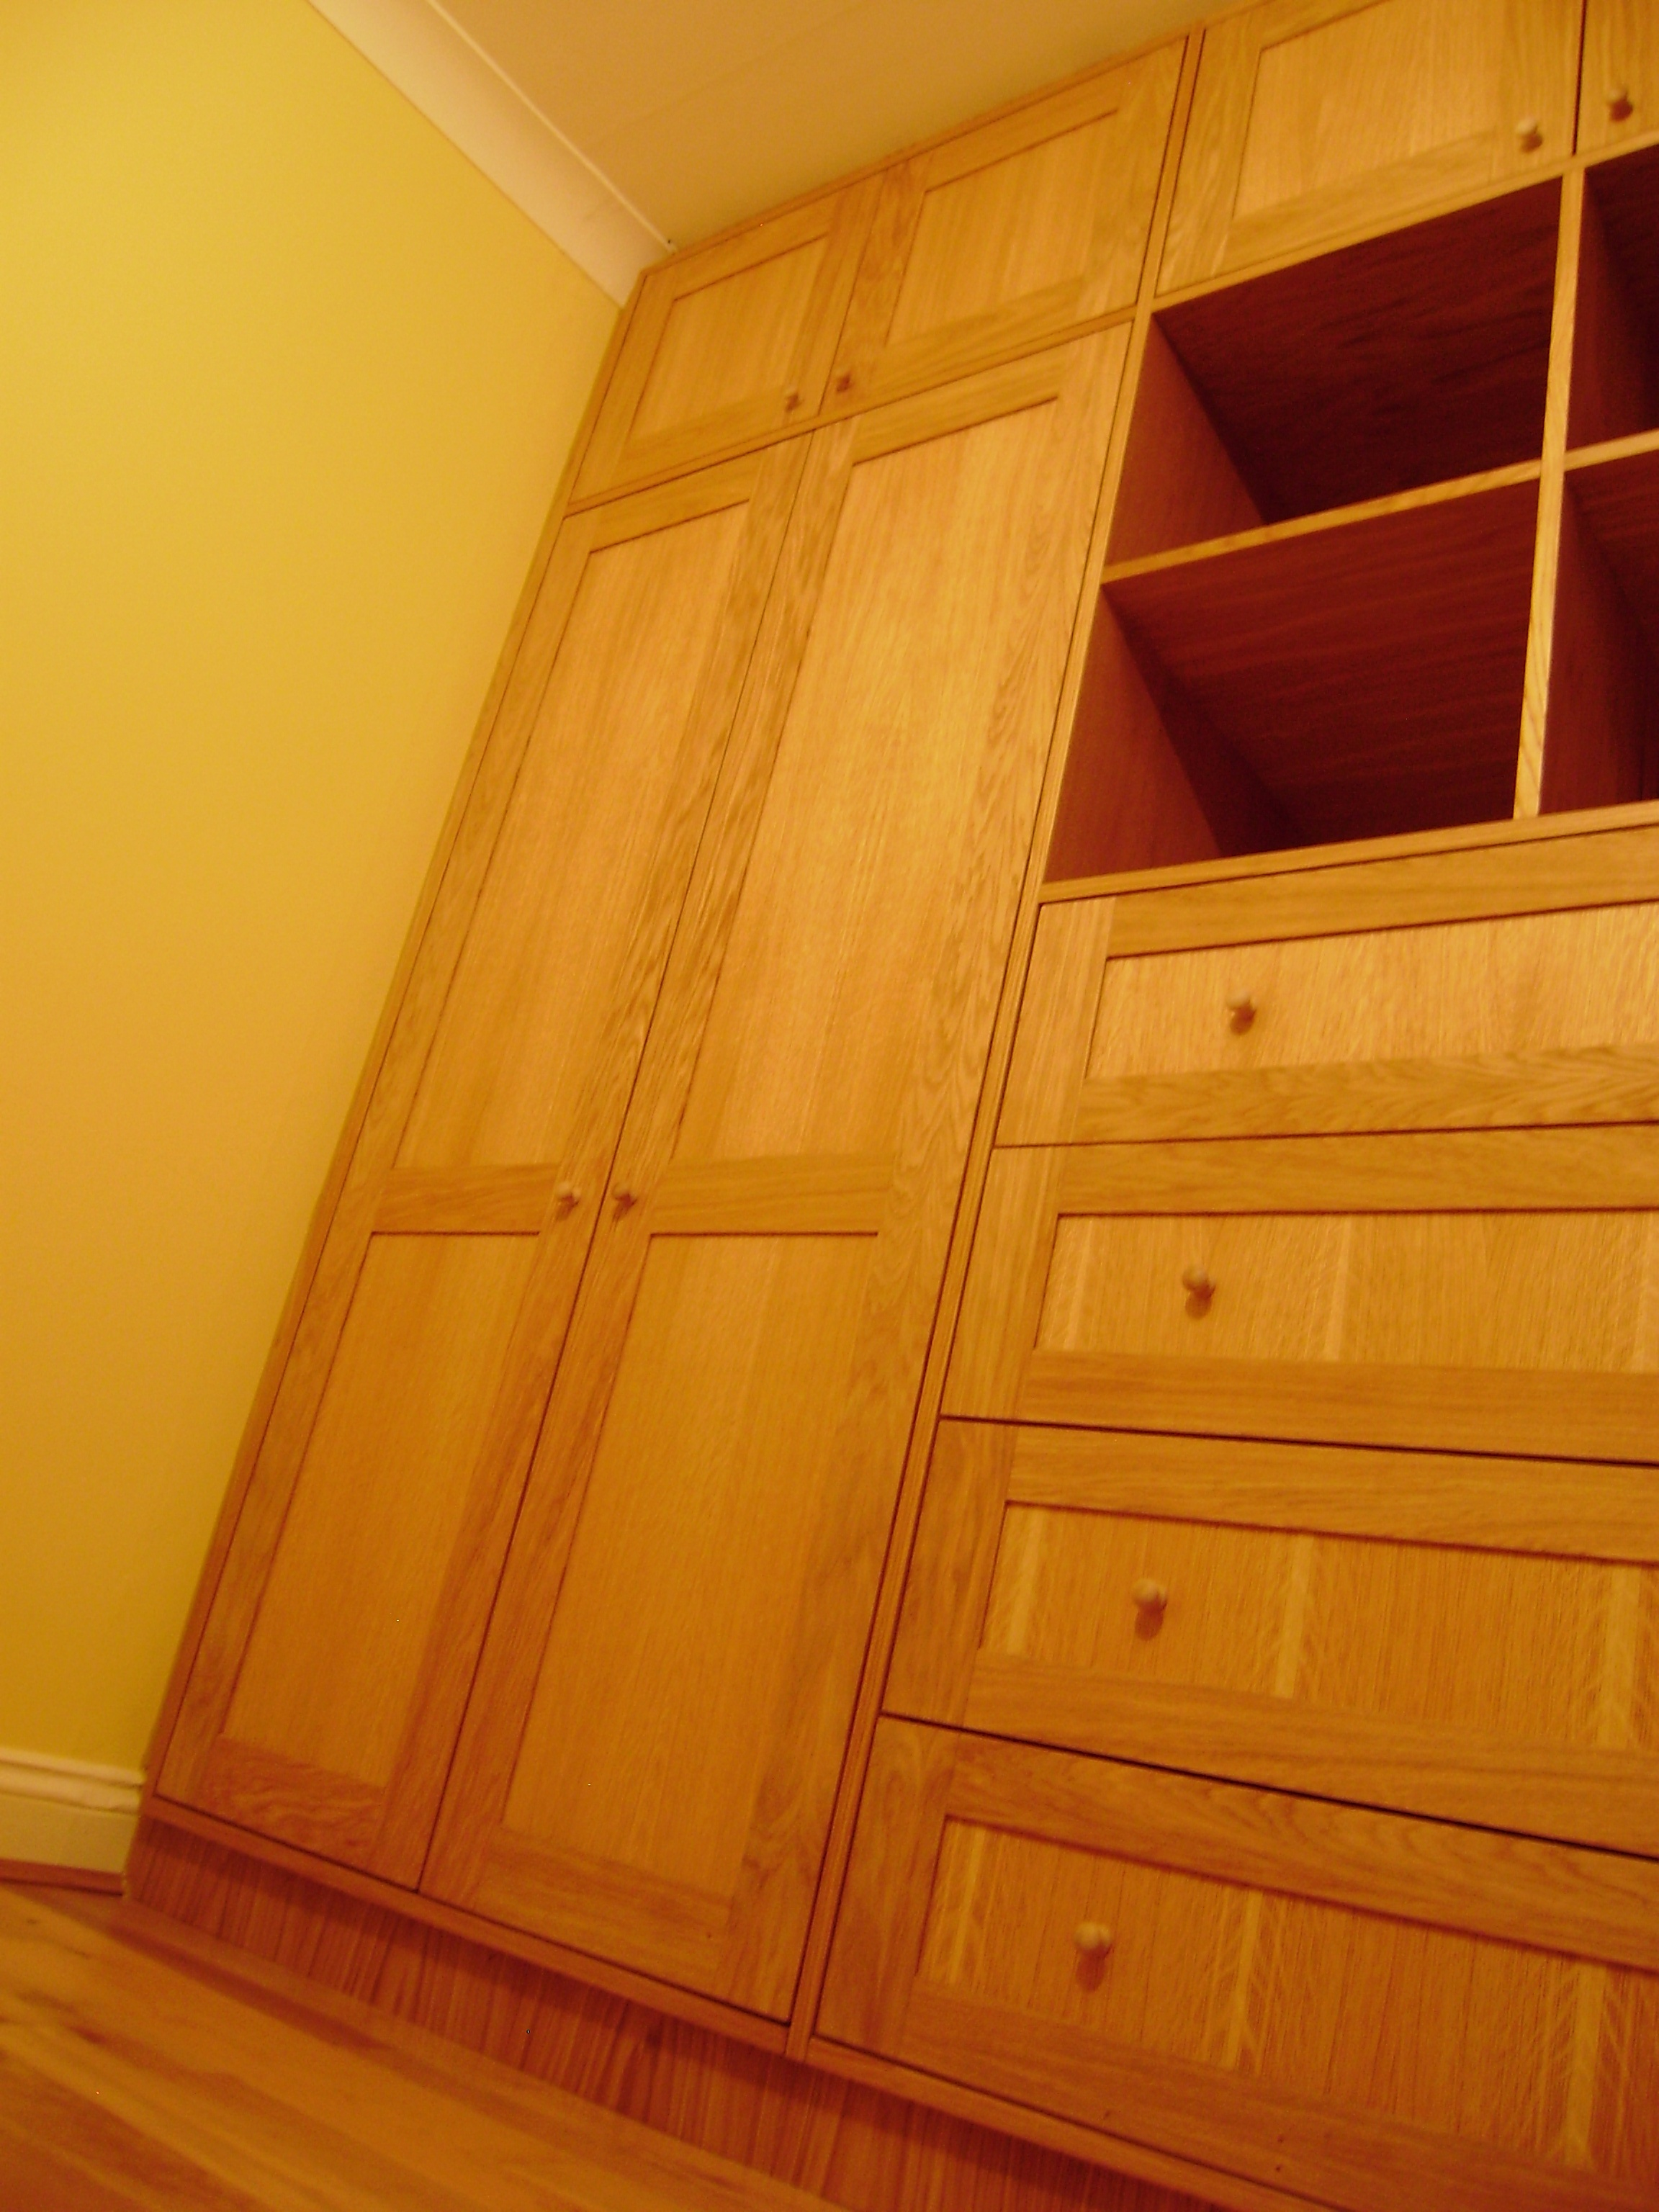 Storage - These oak wardrobes were commissioned for young twins. Particular attention has been paid to ensuring the grain of the timber flows from panel to panel.